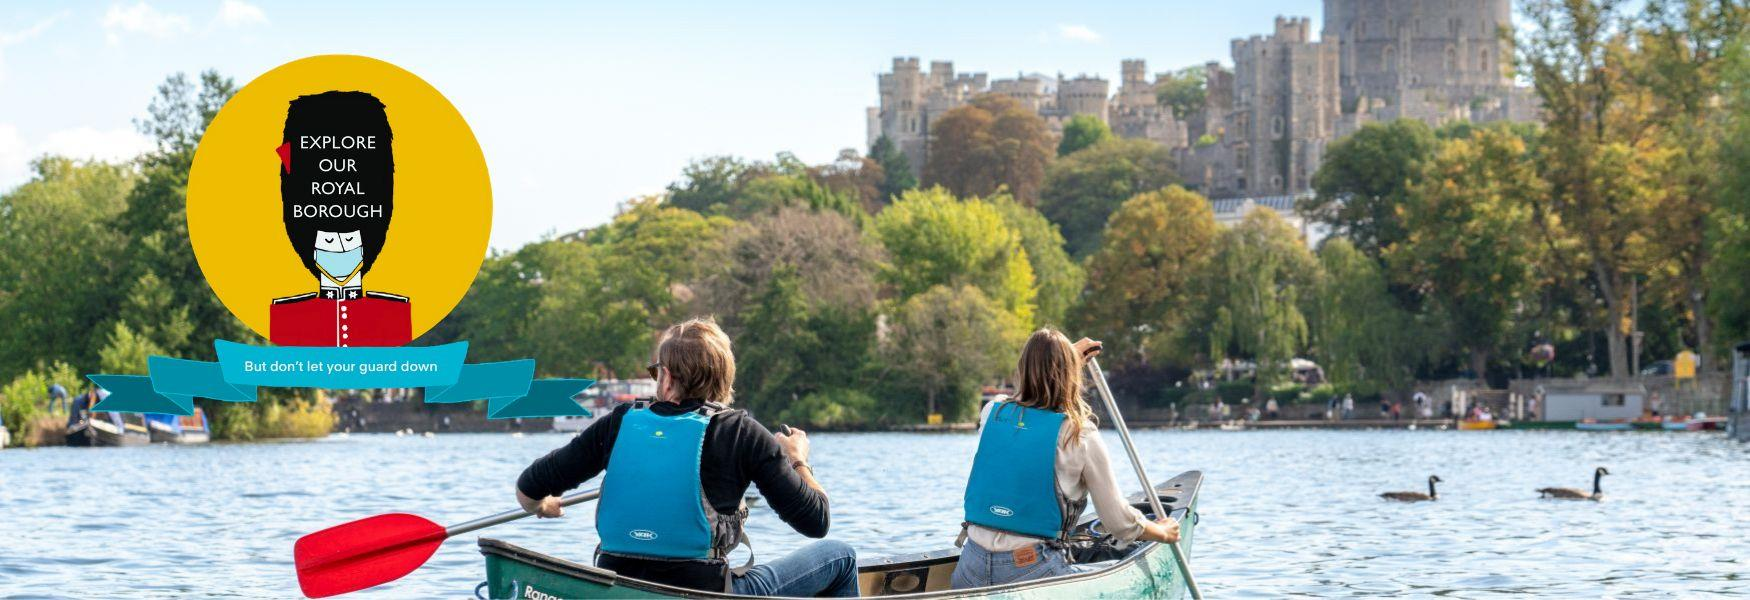 Canoeing on the River Thames at Windsor